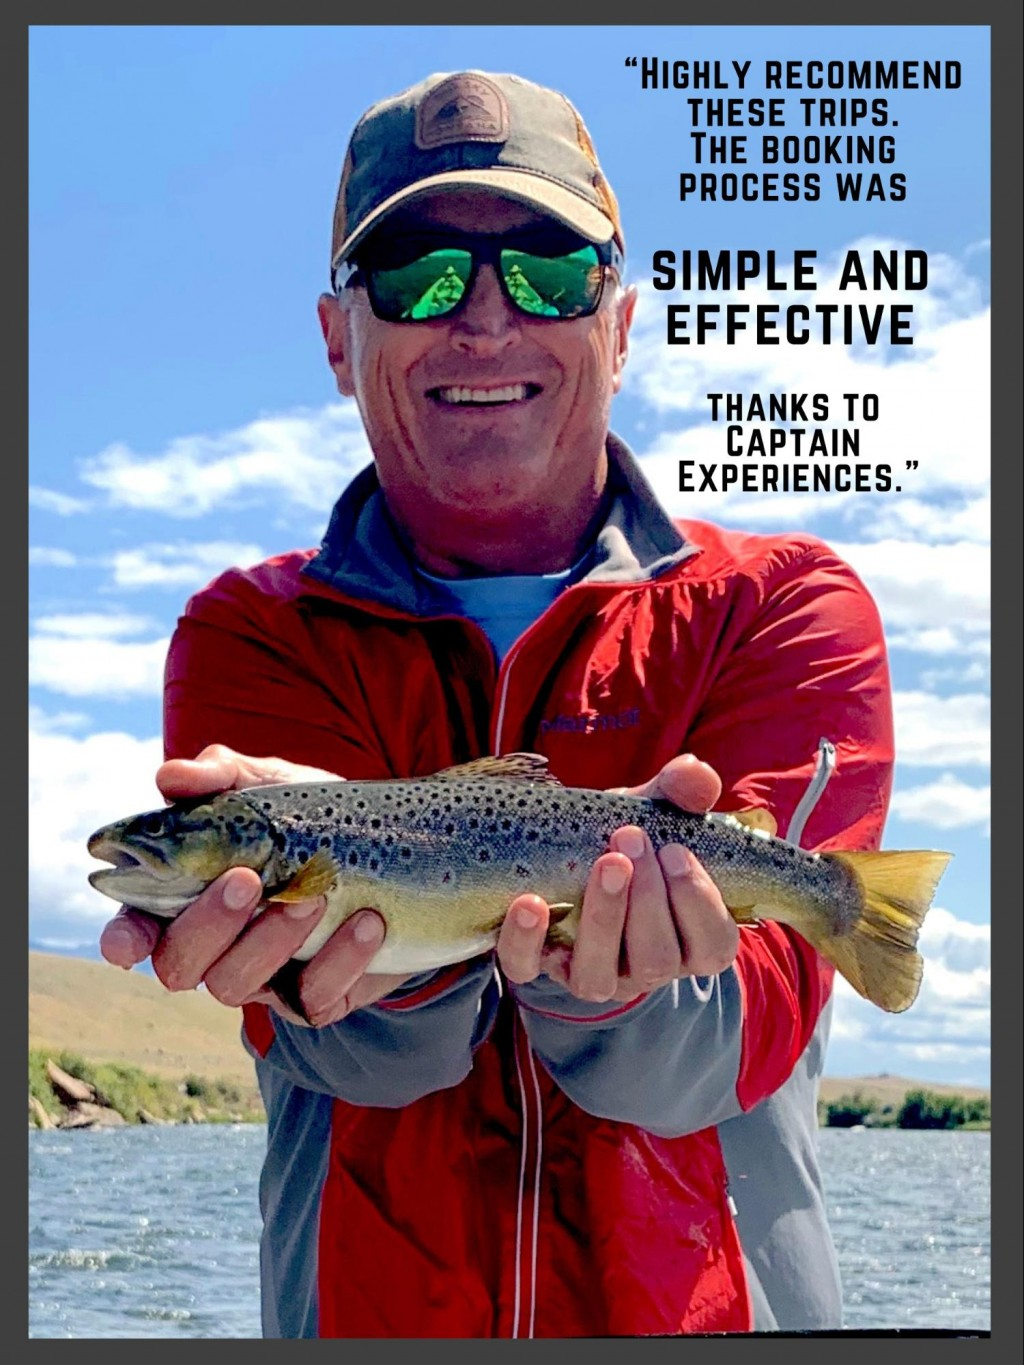 Fishing review of captain experiences trout trip